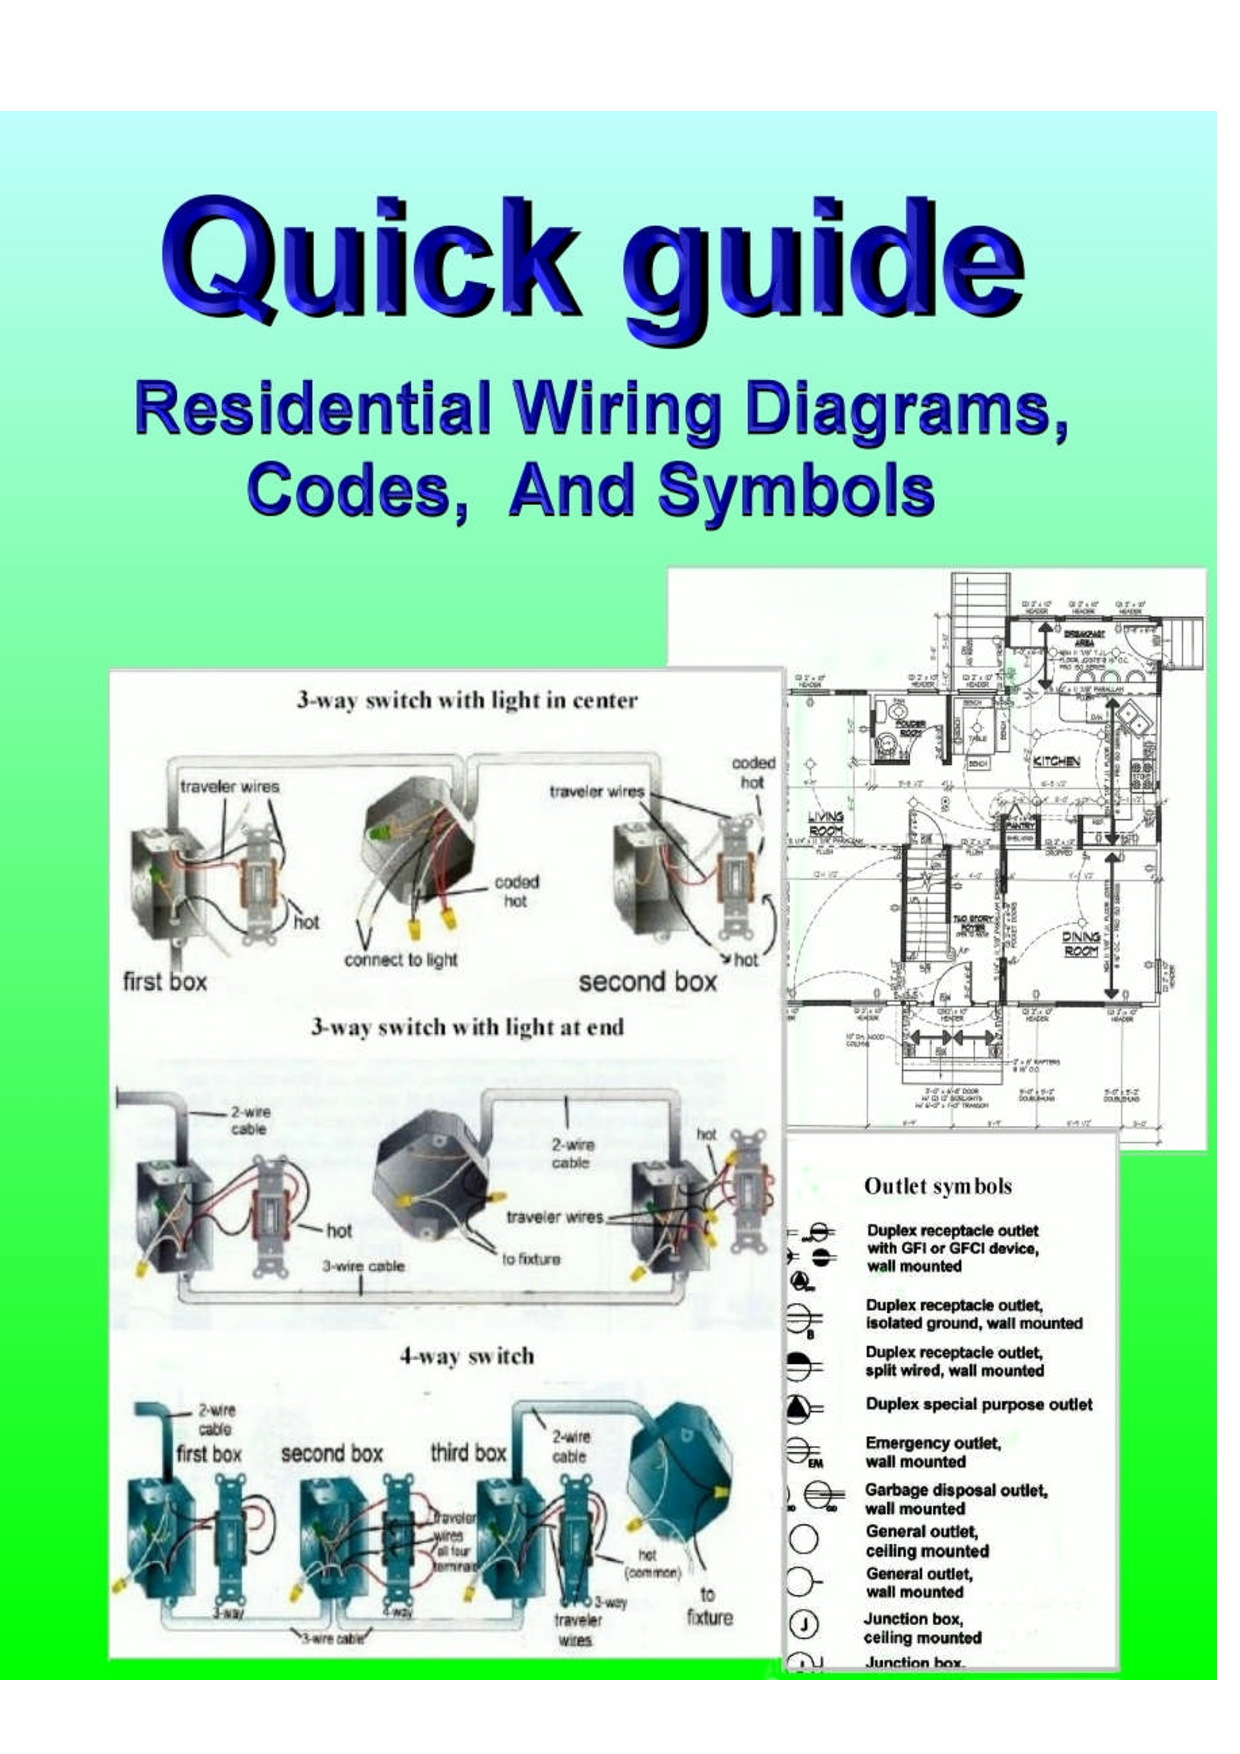 Home electrical wiring diagramspdf download legal documents 39 home electrical wiring diagramspdf download legal documents 39 pages with many diagrams and illustrations asfbconference2016 Choice Image